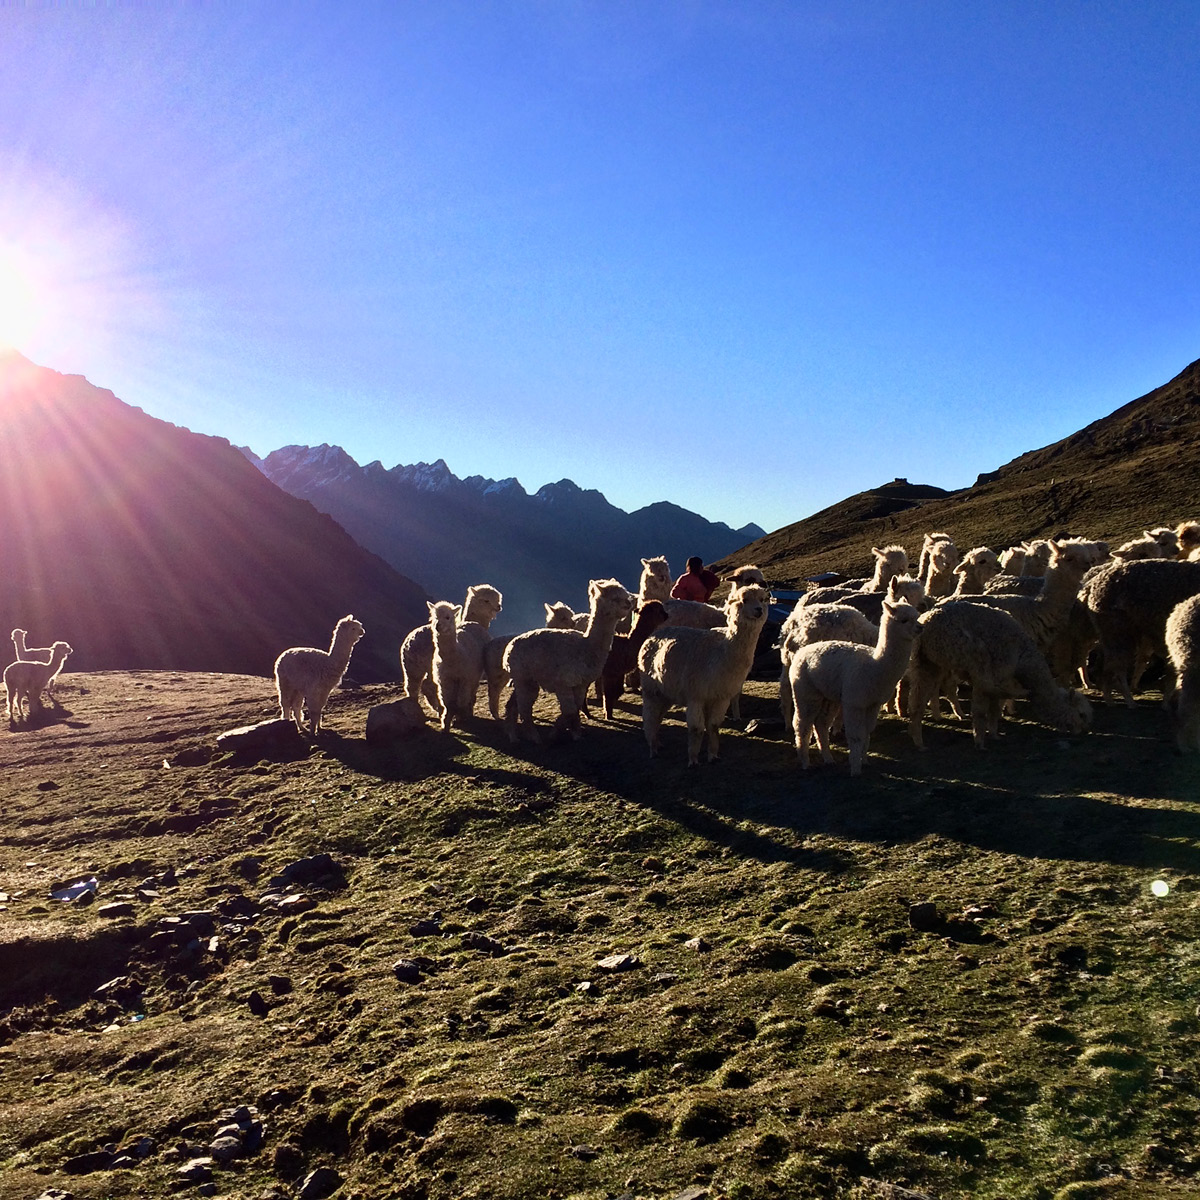 A view of a Peruvian mountainside with alpacas.